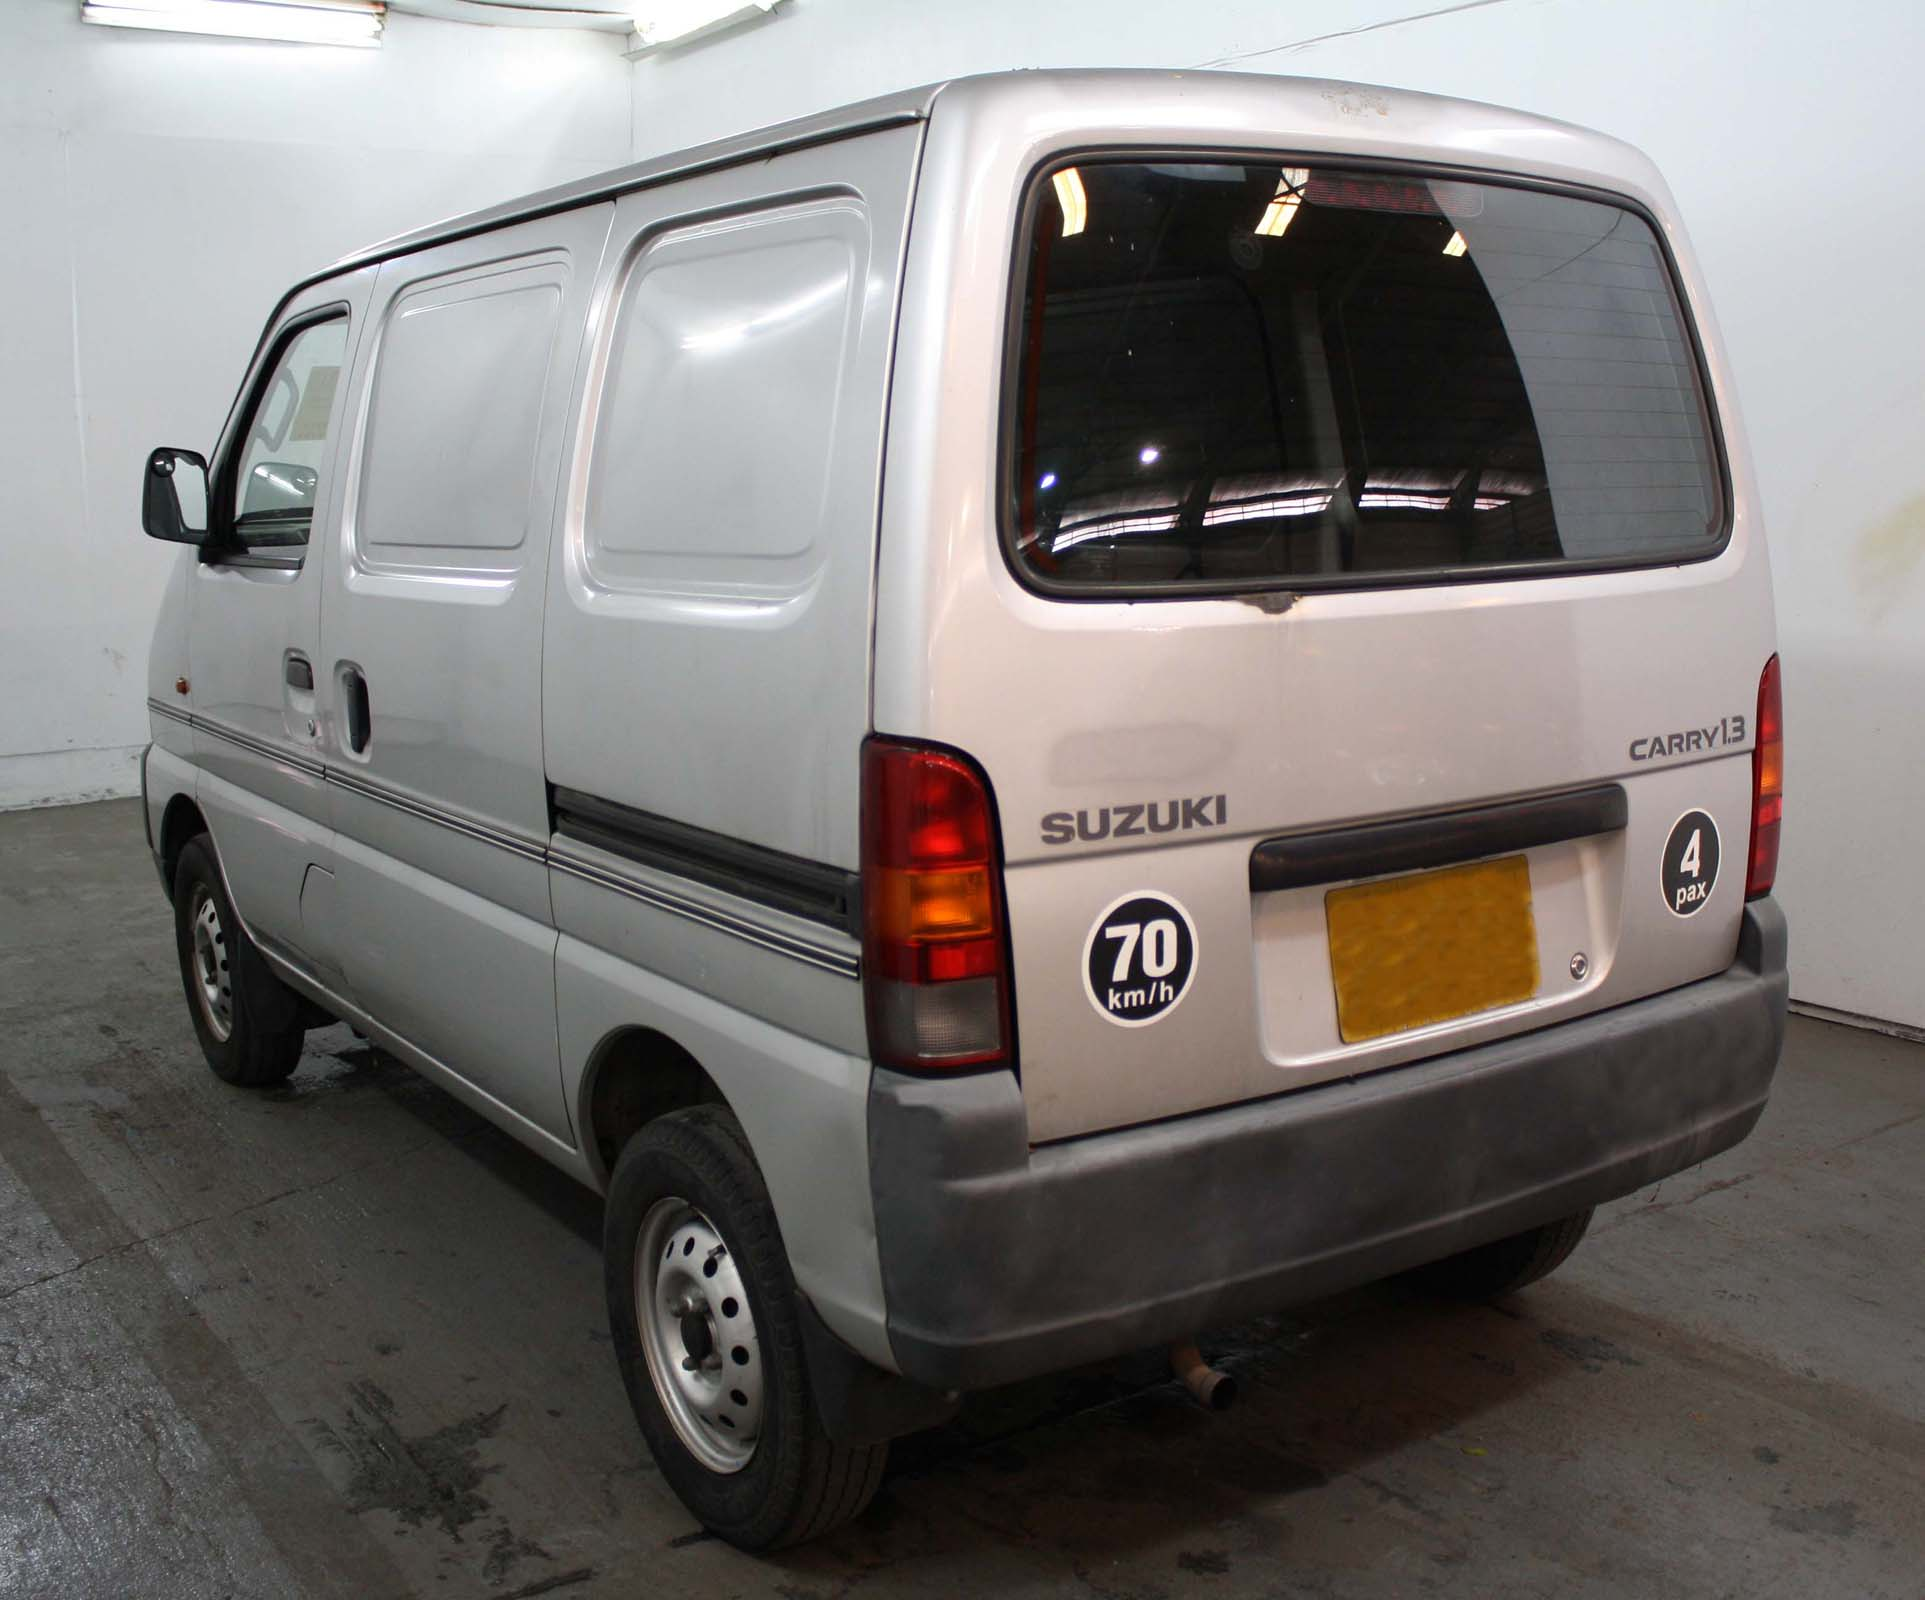 Suzuki 1.3 photo - 1